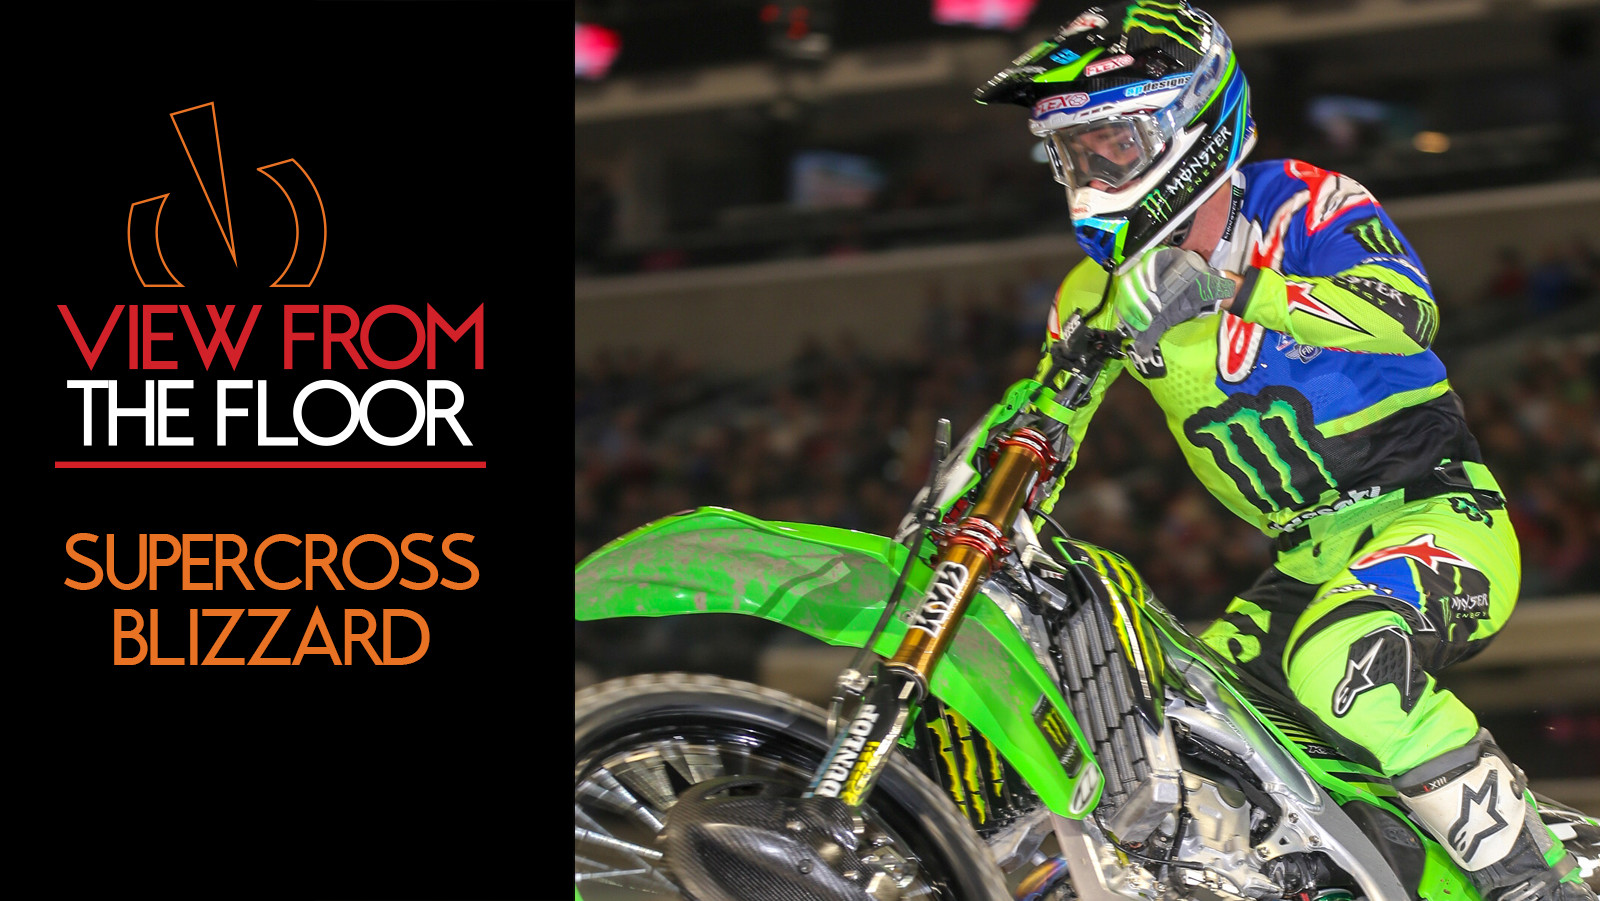 View From The Floor: Supercross Blizzard